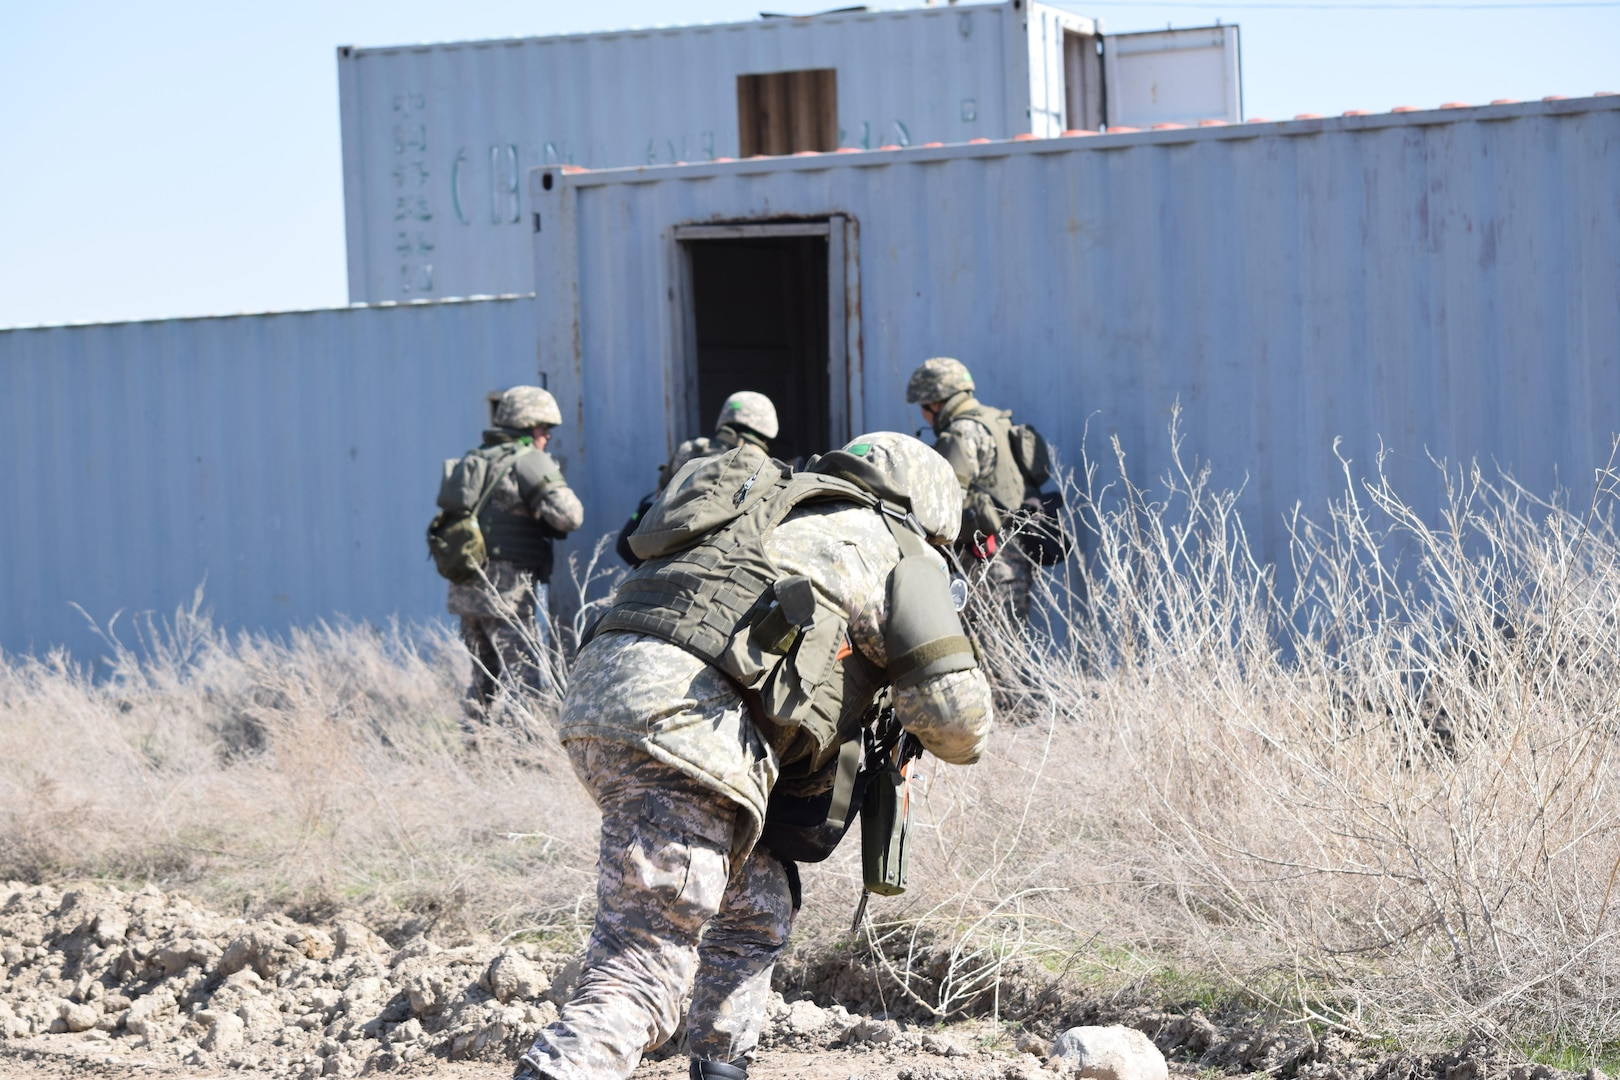 A Kazakhstani soldier runs toward cover during a cordon and search scenario for Steppe Eagle Koktem Apr. 10, 2017, at Illisky Training Center, Kazakhstan.